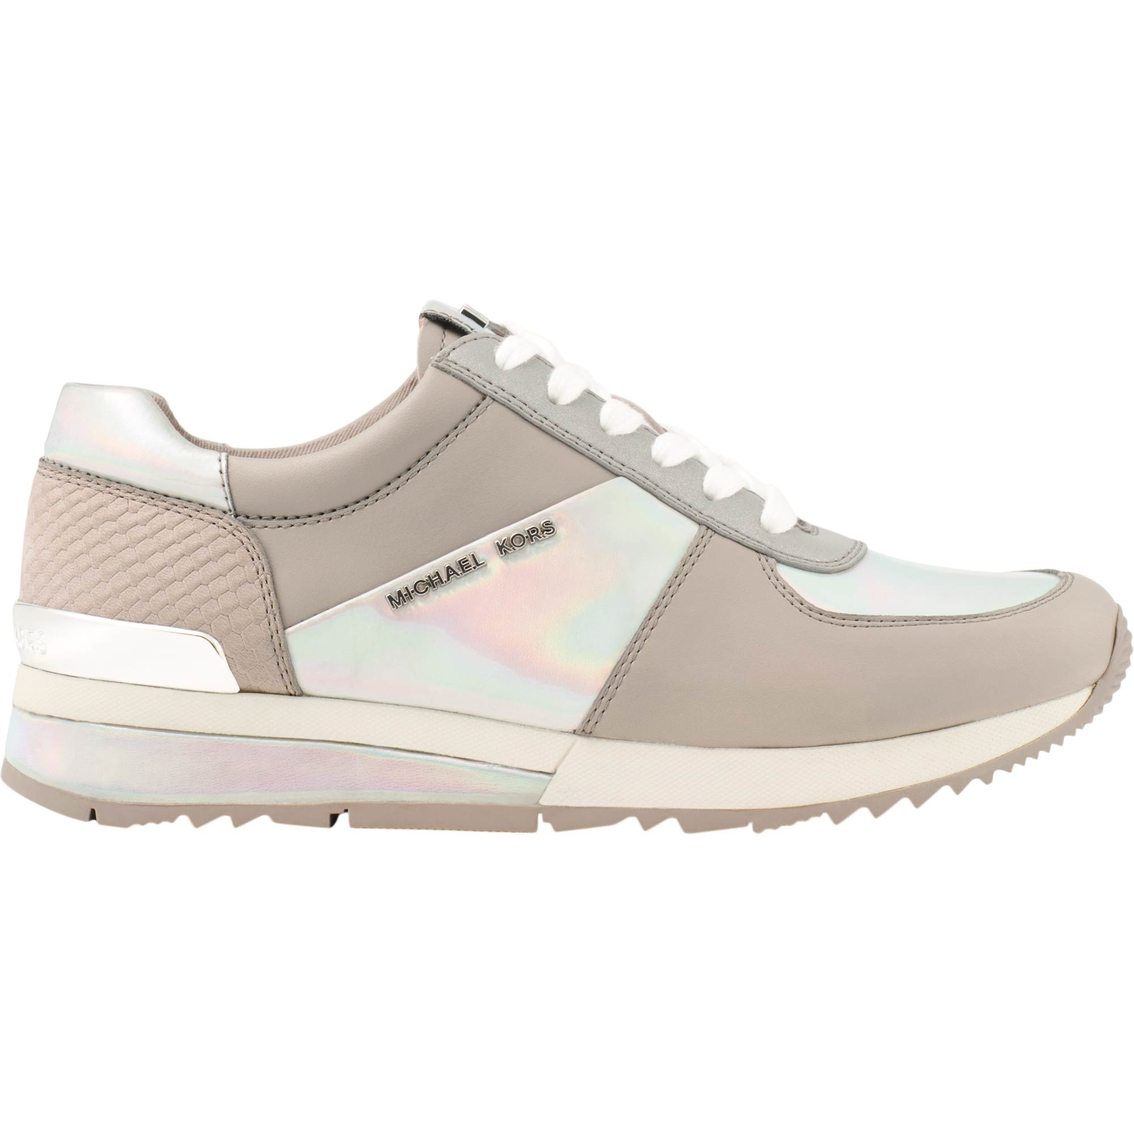 0a34cef145c Michael Kors Allie Wrap Trainer Iridescent Leather Sneakers ...